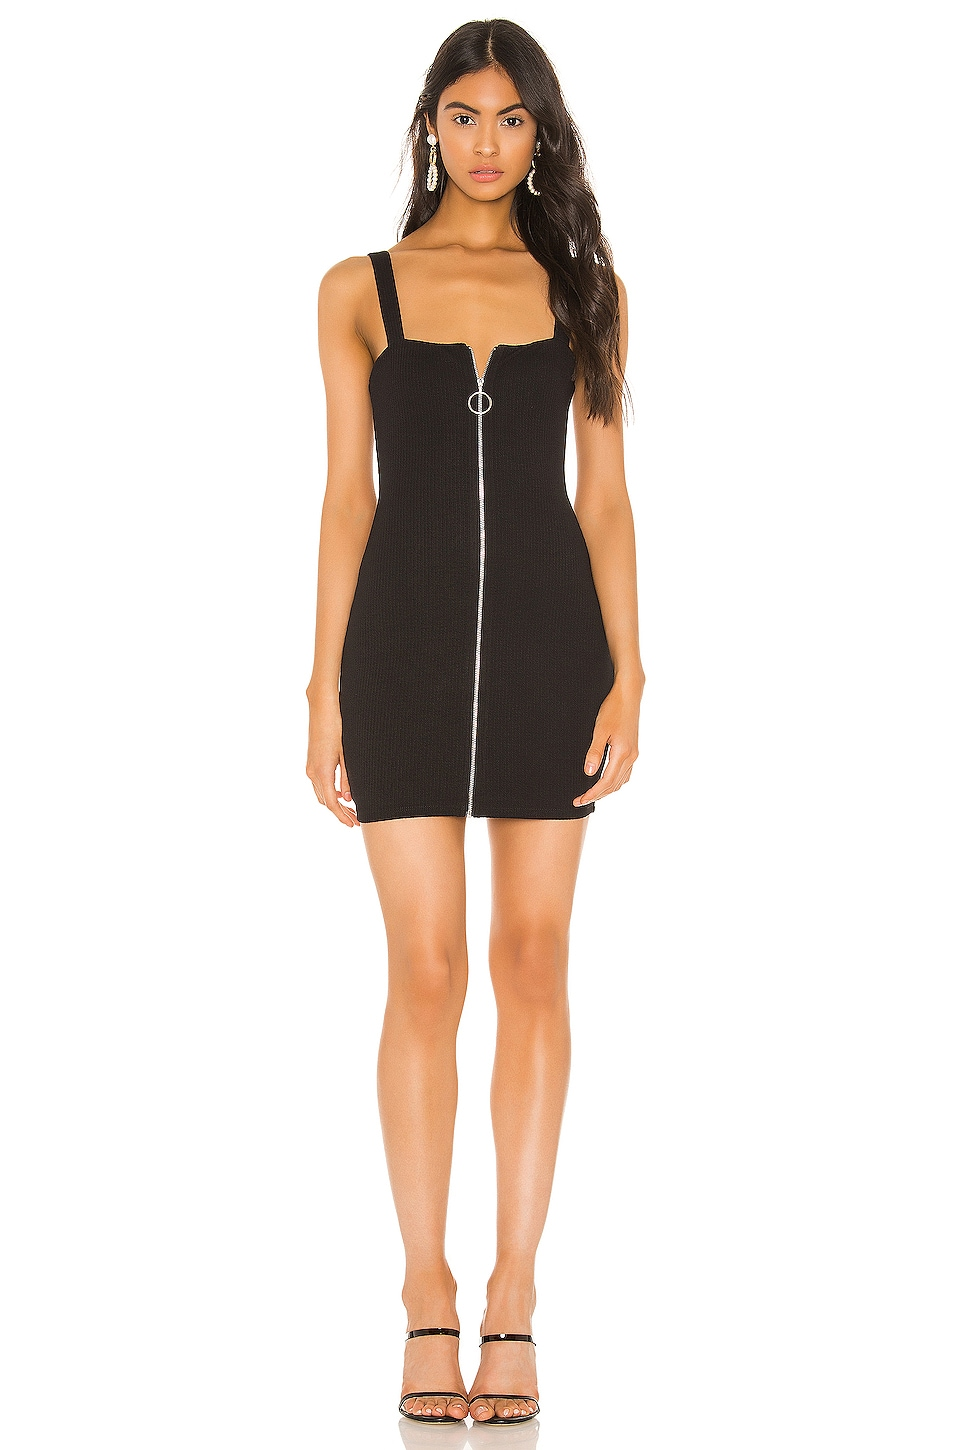 Privacy Please Darby Mini Dress in Black